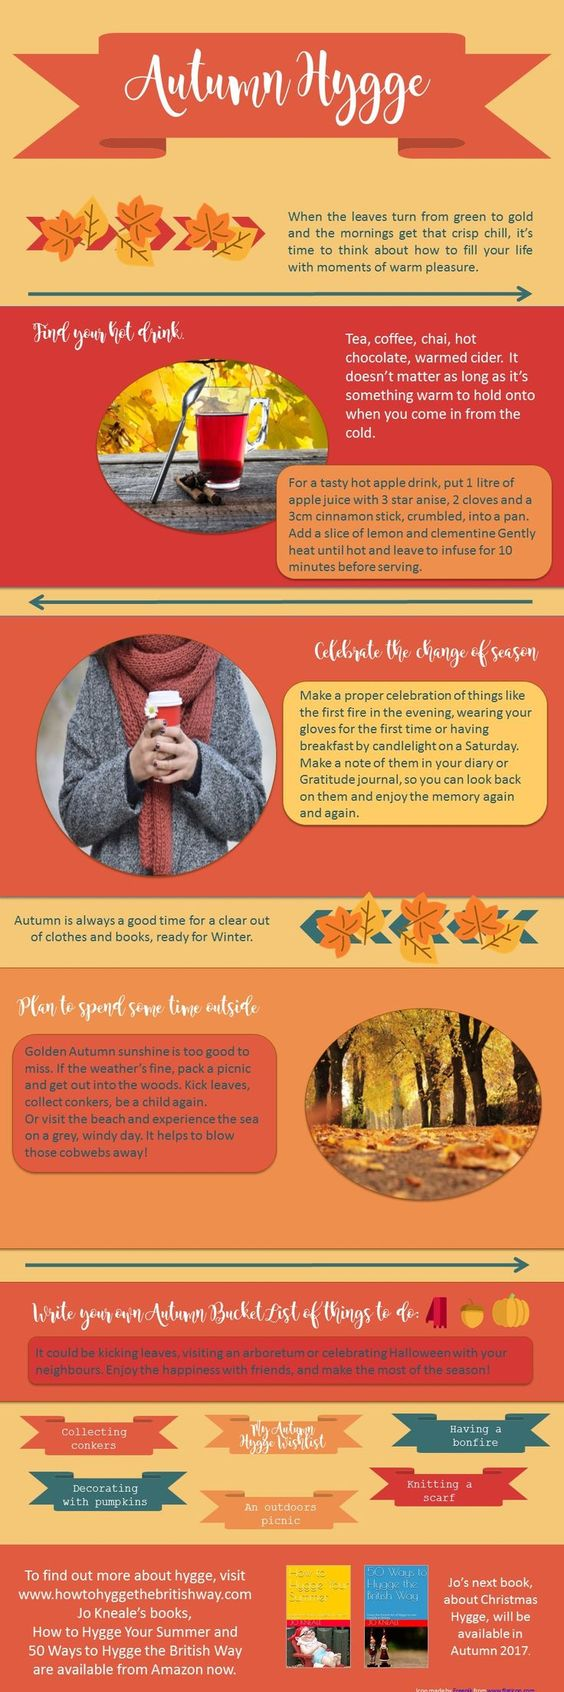 Autumn Hygge Infographic